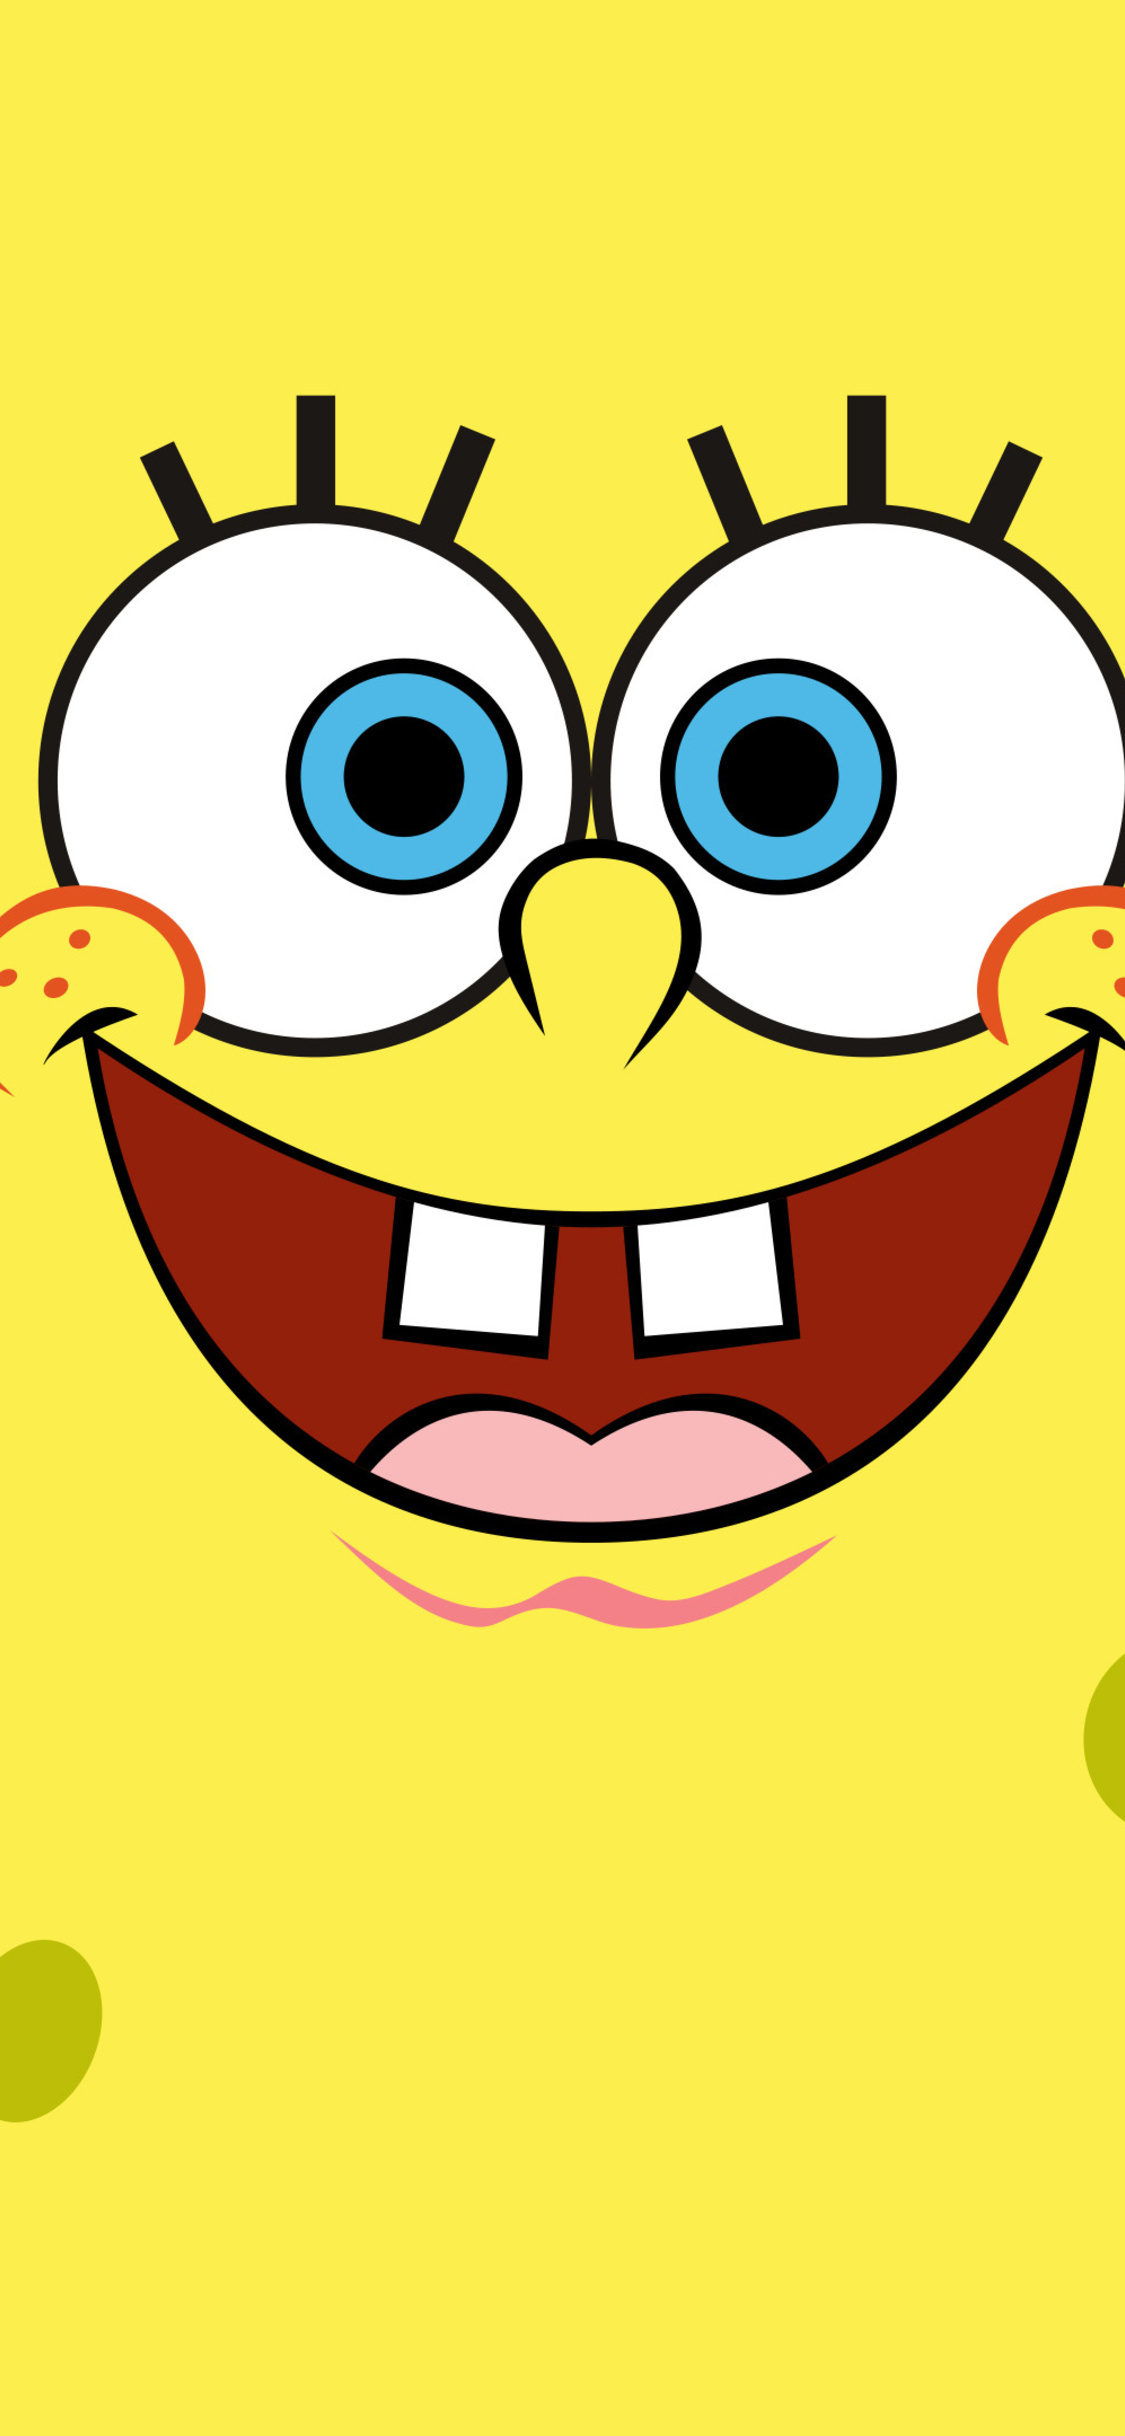 1125x2436 Spongebob Squarepants Minimalist 4k Iphone Xs Iphone 10 Iphone X Hd 4k Wallpapers Images Backgrounds Photos And Pictures